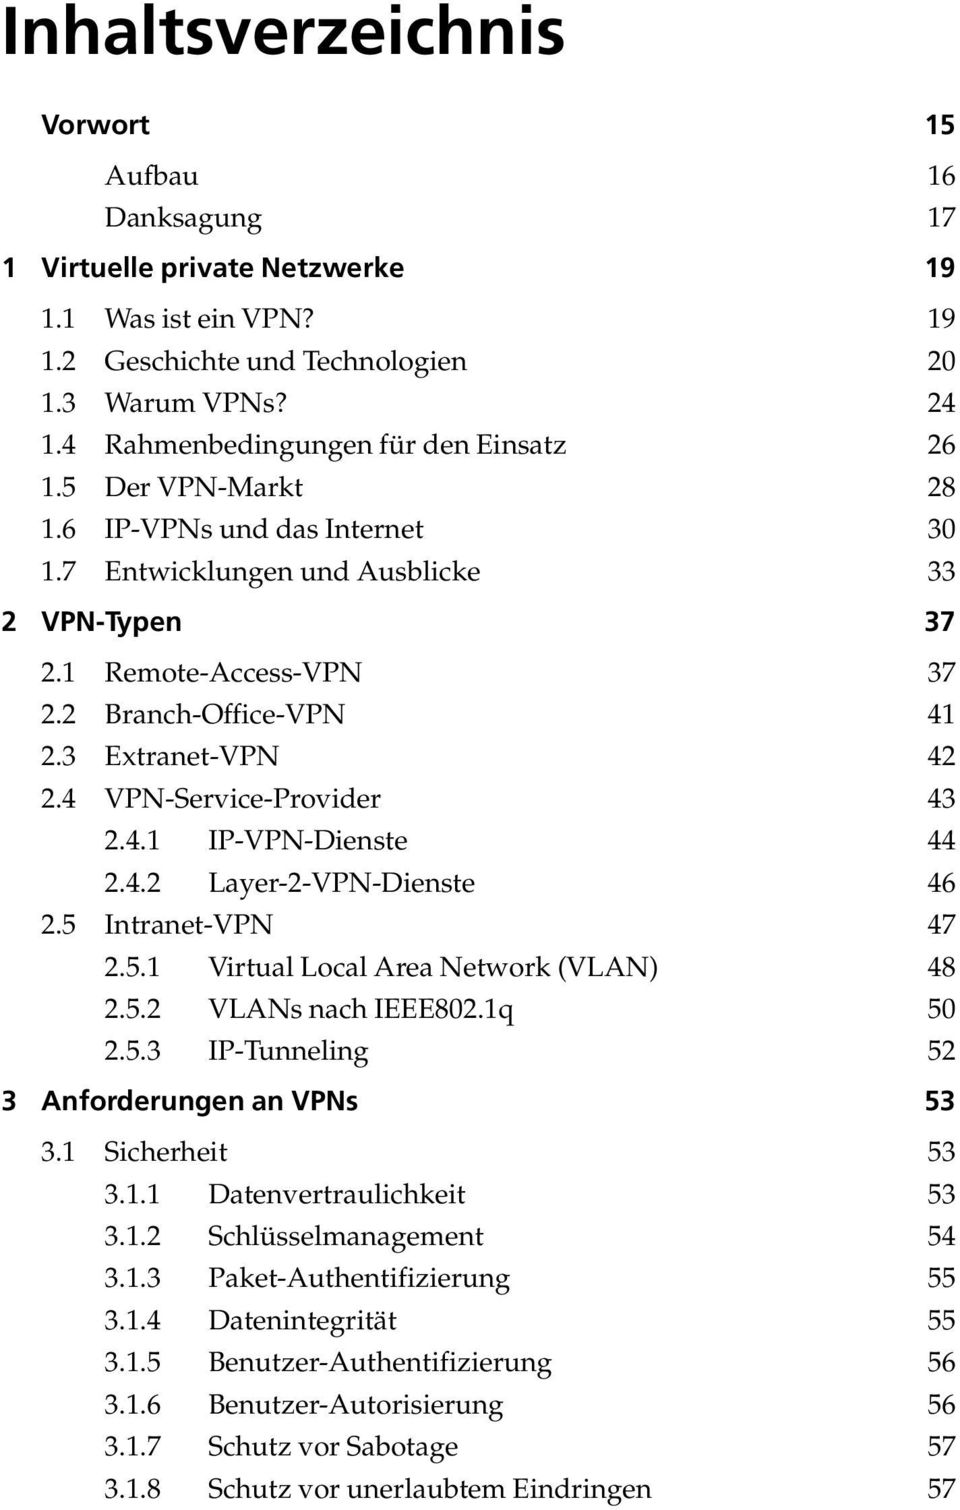 3 Extranet-VPN 42 2.4 VPN-Service-Provider 43 2.4.1 IP-VPN-Dienste 44 2.4.2 Layer-2-VPN-Dienste 46 2.5 Intranet-VPN 47 2.5.1 Virtual Local Area Network (VLAN) 48 2.5.2 VLANs nach IEEE802.1q 50 2.5.3 IP-Tunneling 52 3 Anforderungen an VPNs 53 3.